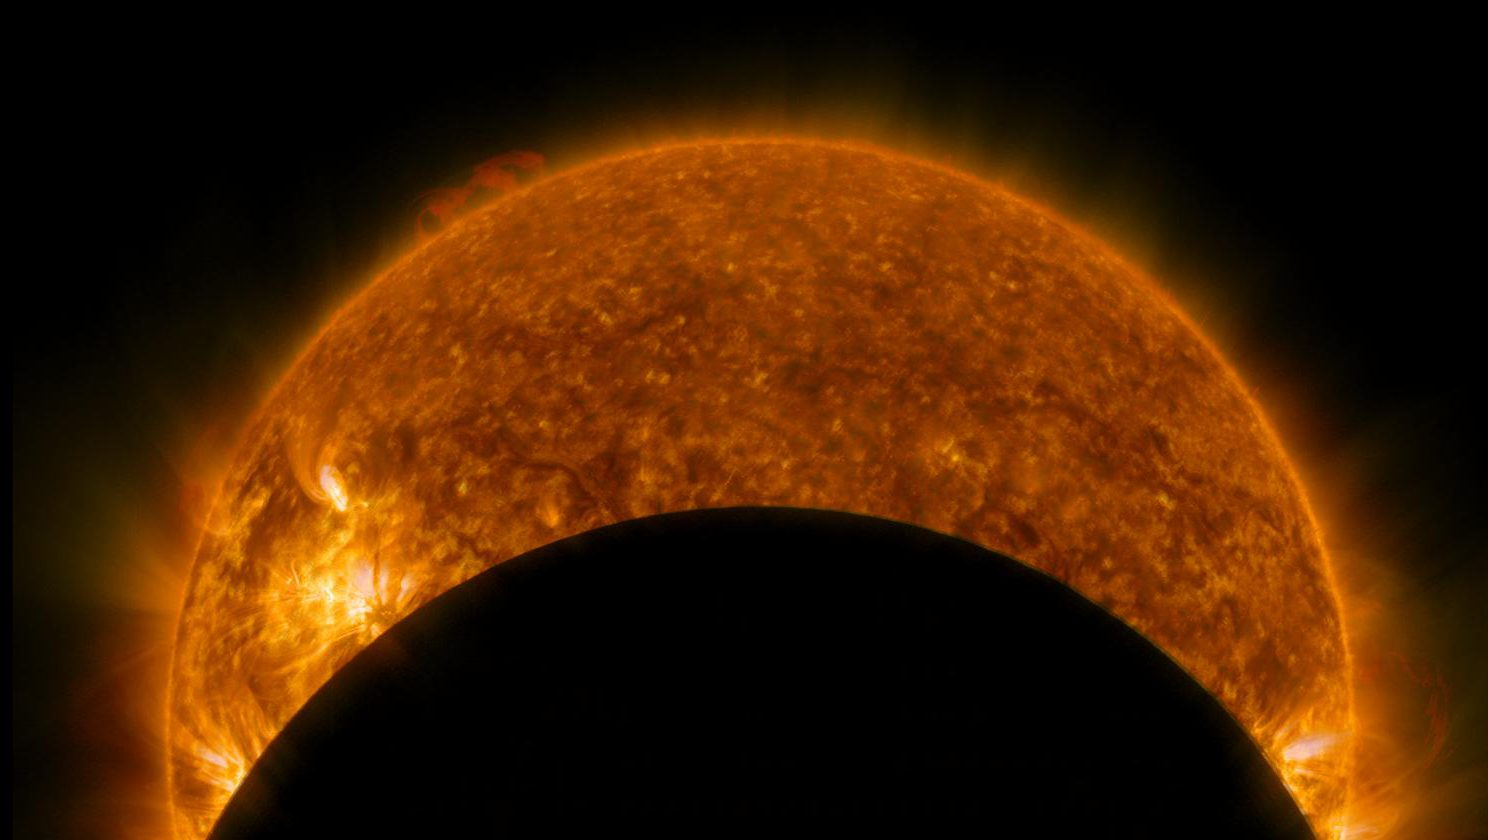 NASA's Solar Dynamics Observatory captured this ultraviolet image of the moon eclipsing the sun on Jan. 31, 2014.